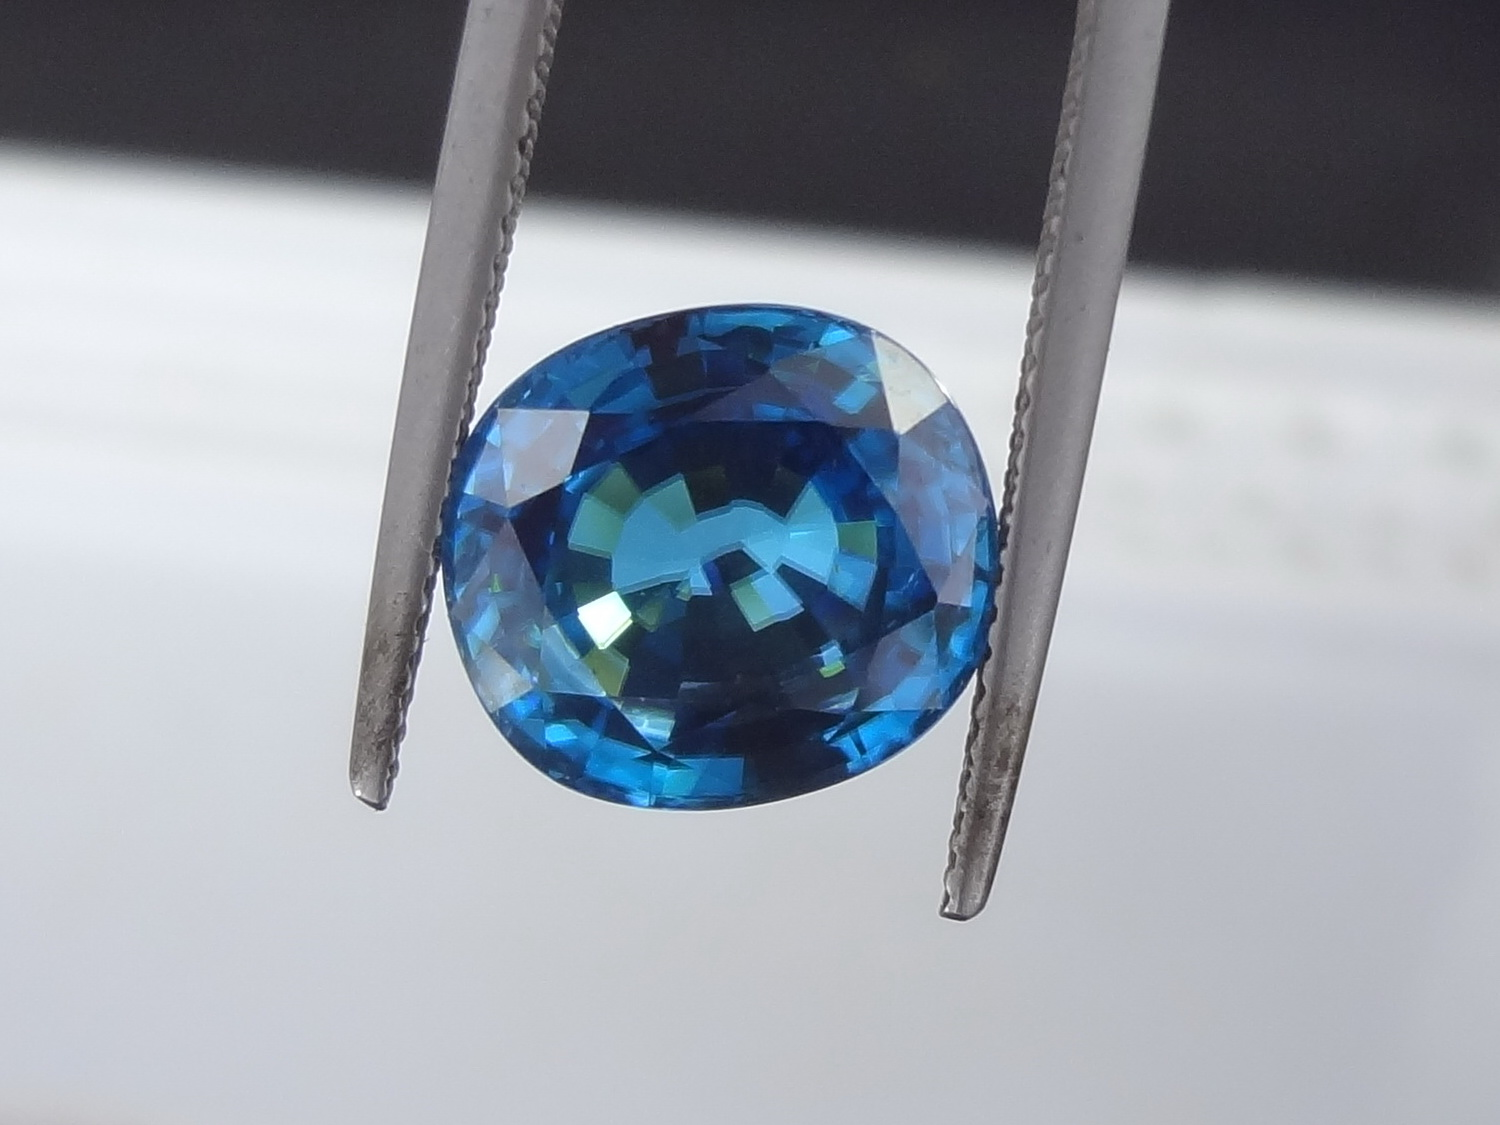 Extra large Blue Zircon from Cambodia for Sale with great peacock blue colour. This Zircon is completely spotless, perfectly clean (FL) and cut in a Cushion shape.